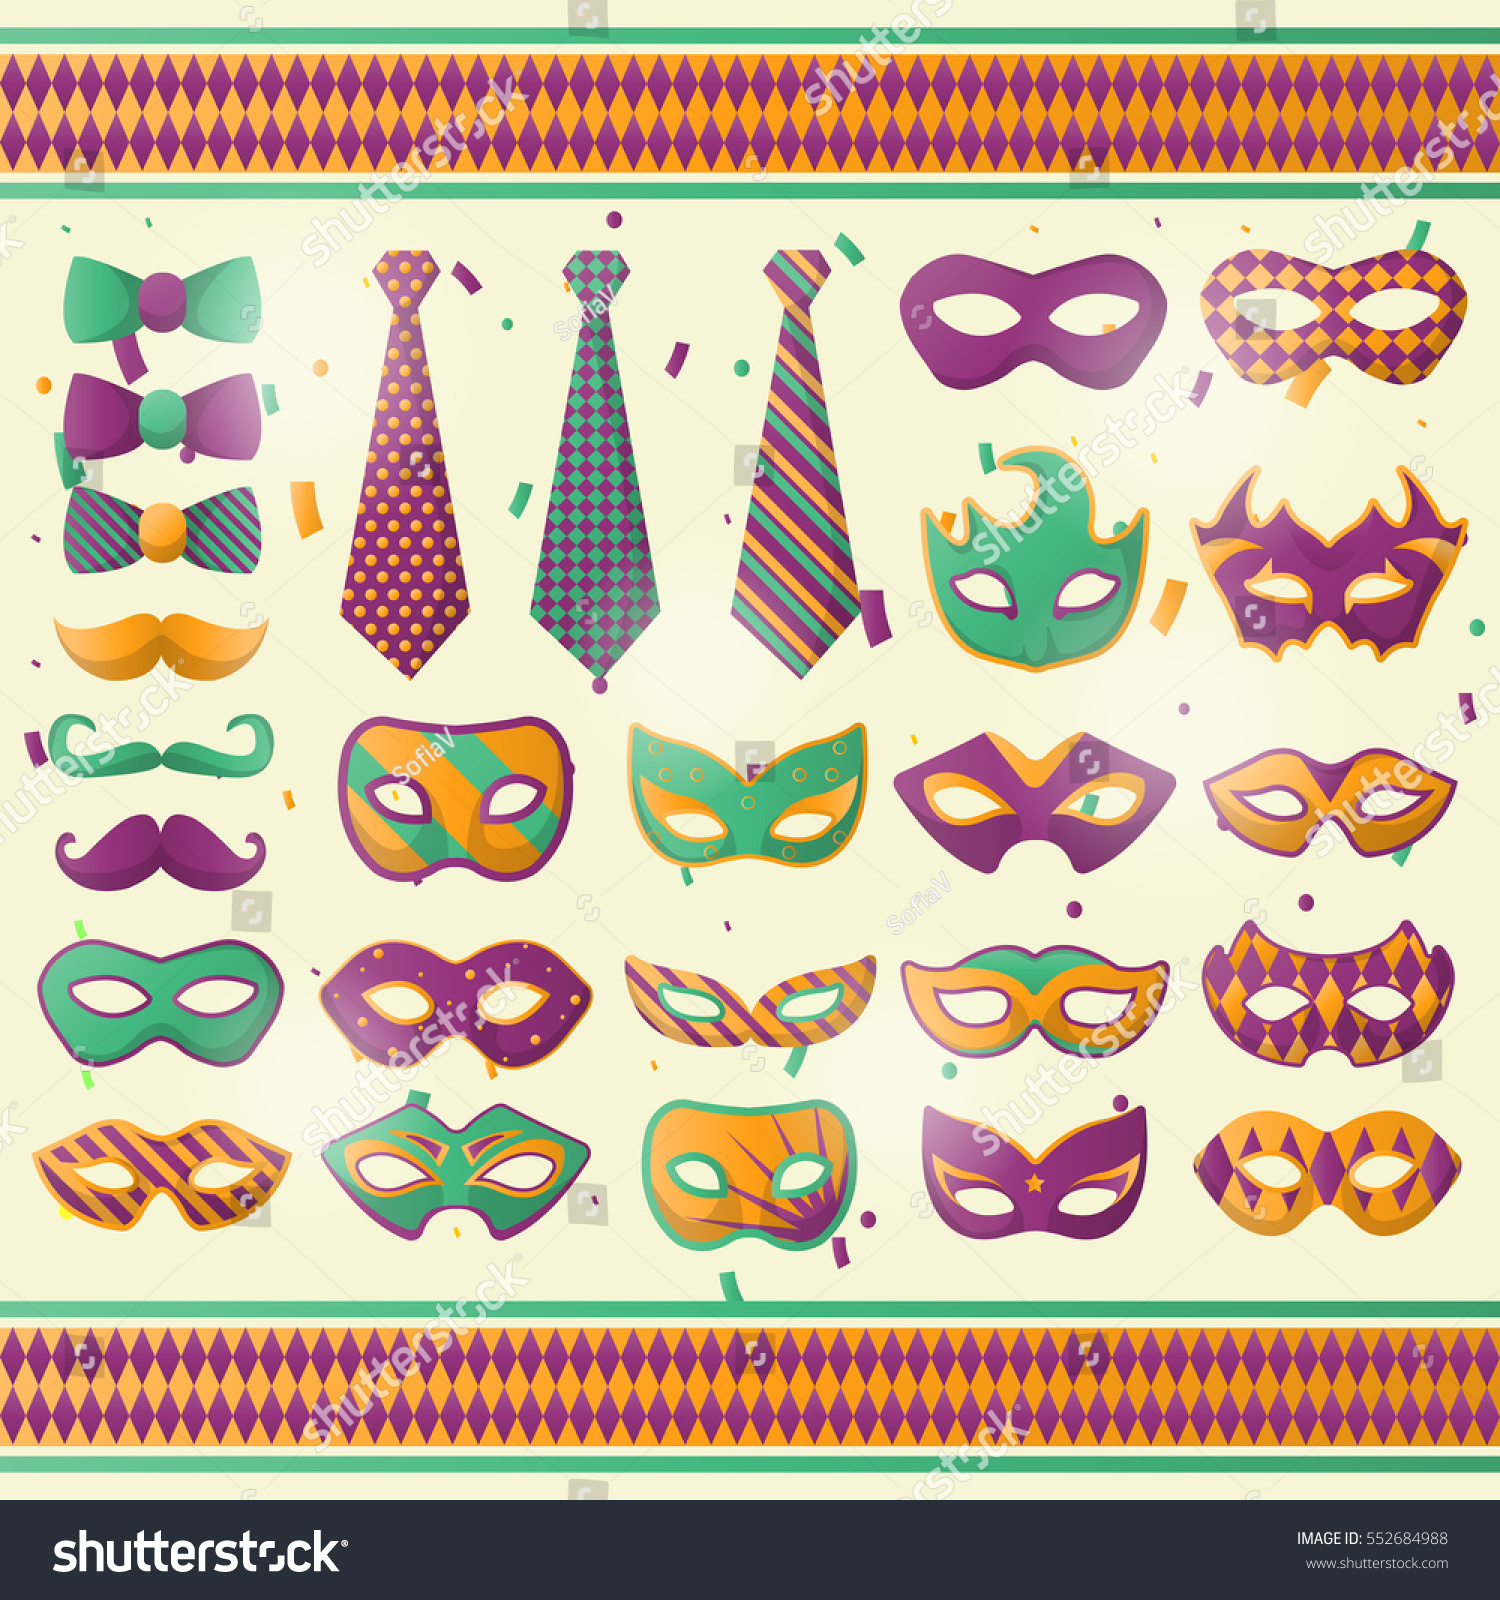 Mardi gras costume party festival carnival stock vector 552684988 mardi gras costume party or festival carnival or masquerade mask and tie set amipublicfo Images